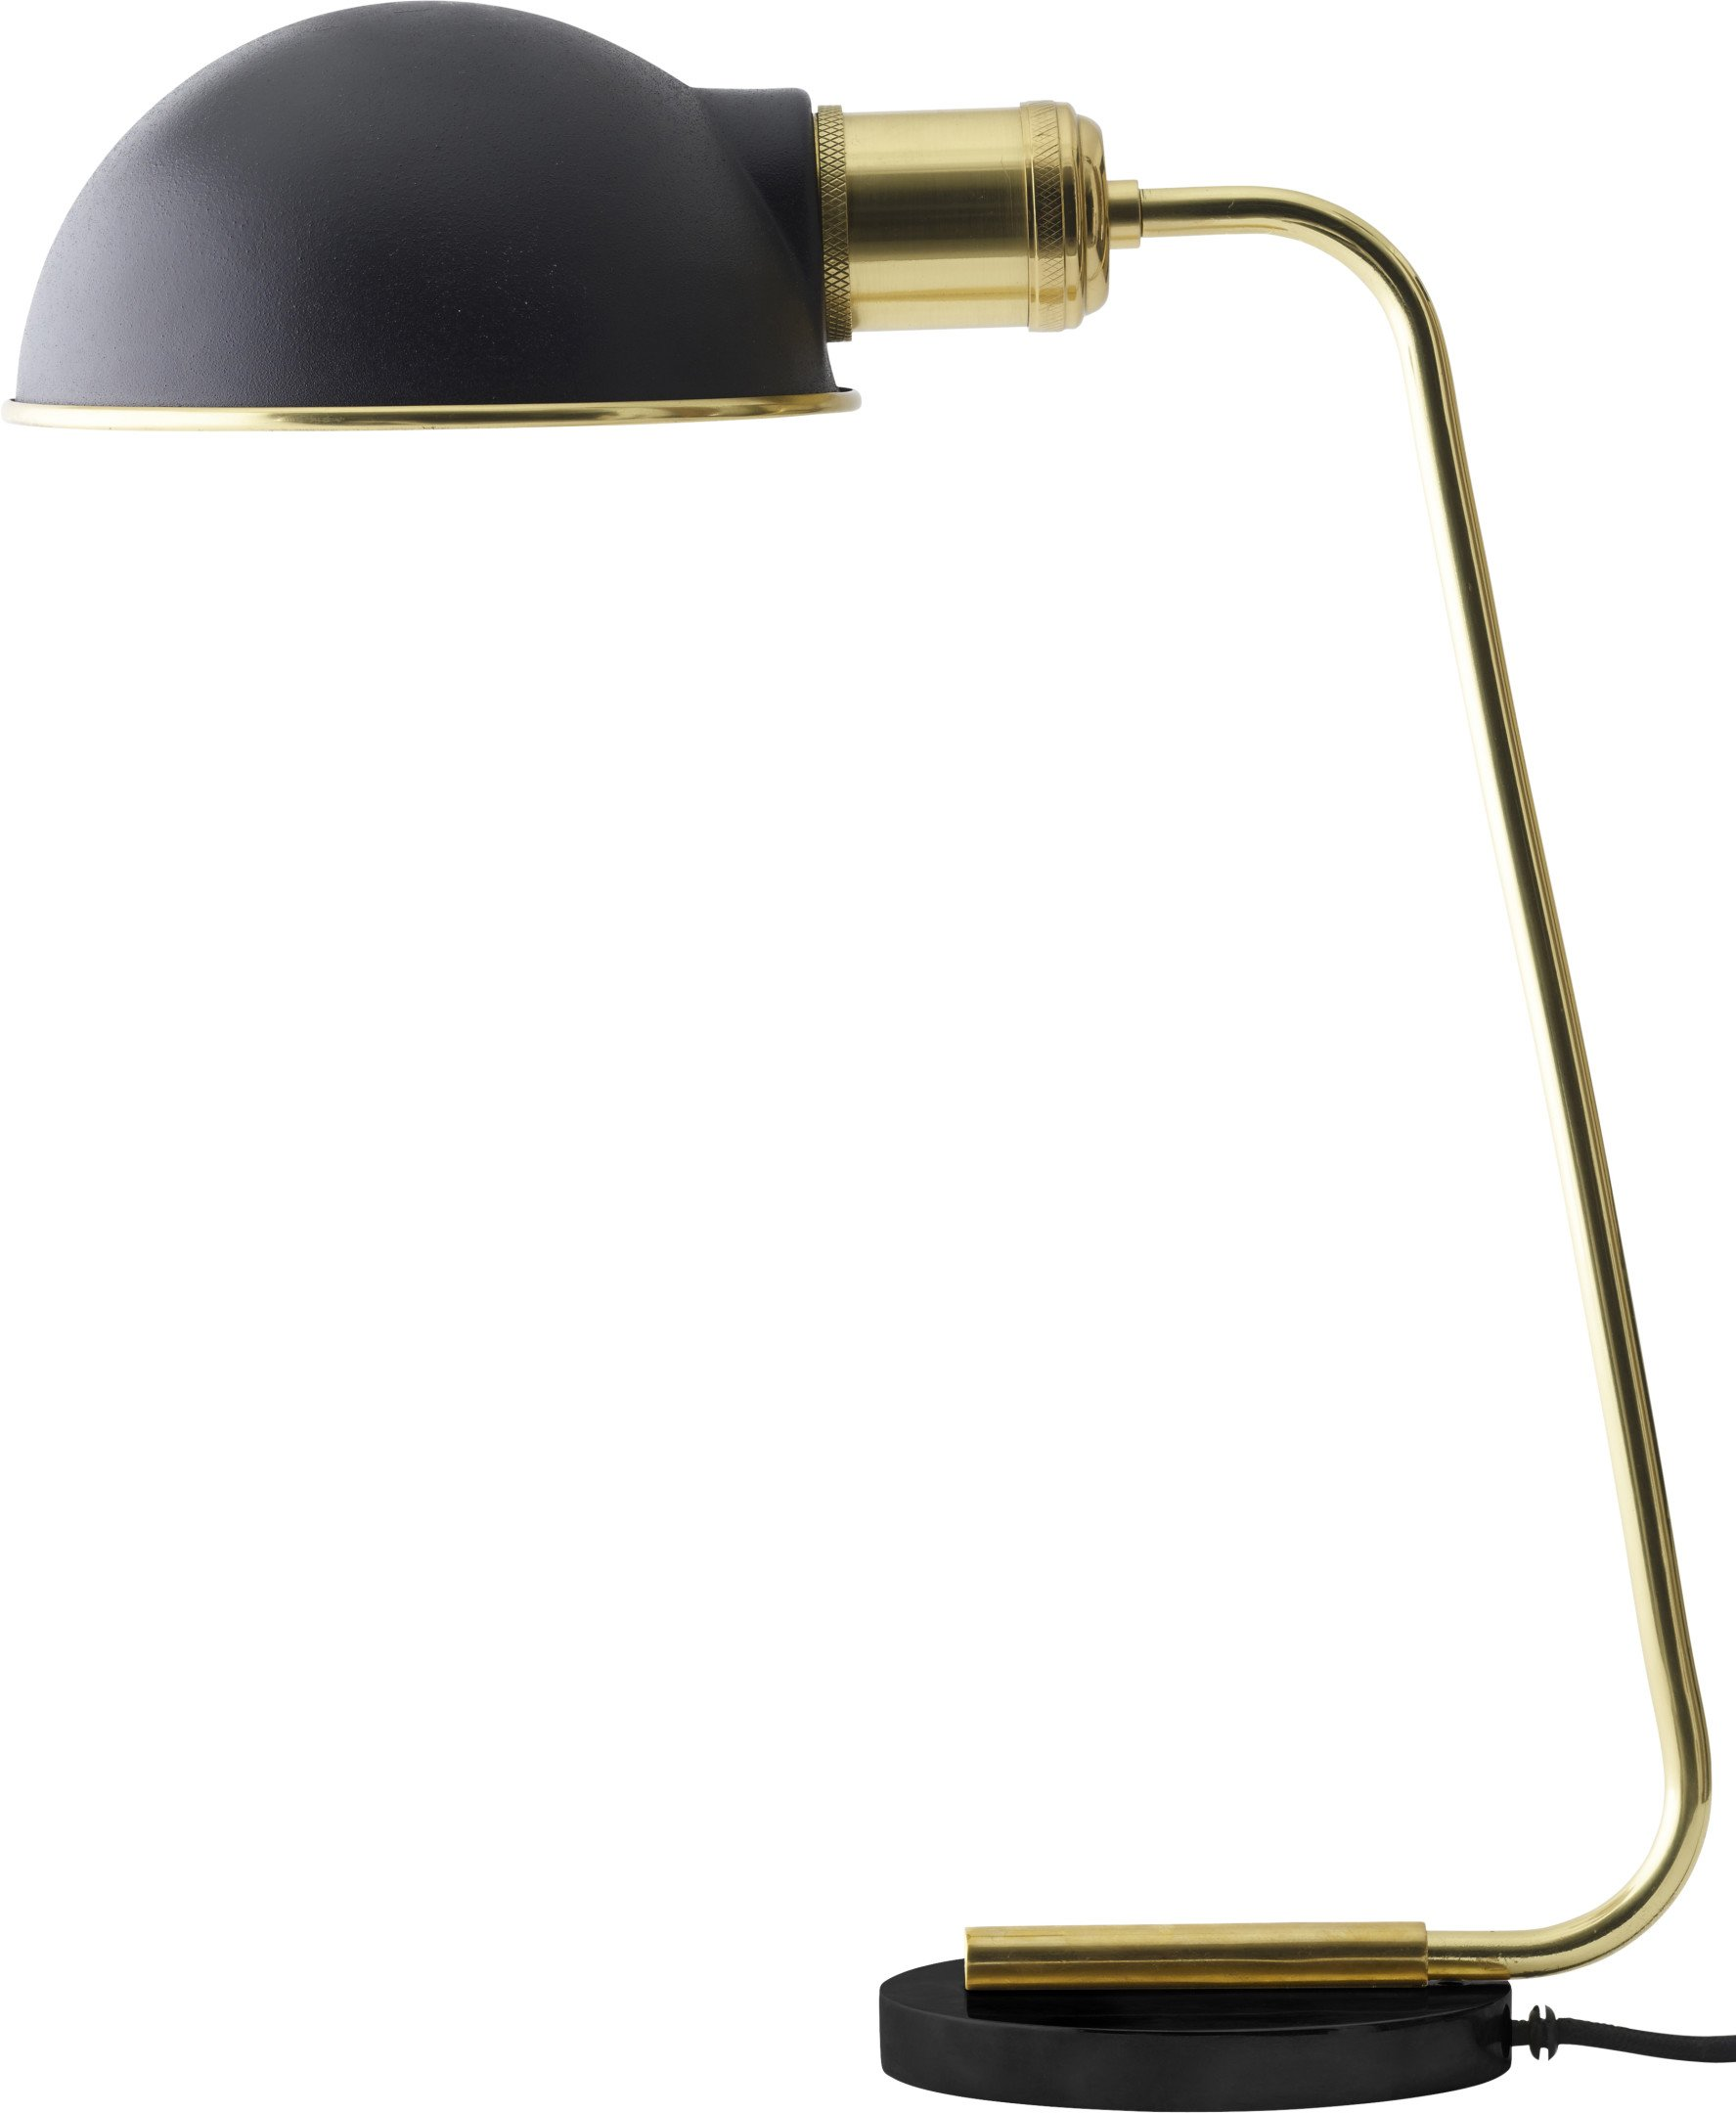 Collister Brass Table Lamp by Soren Rose Studio, Menu